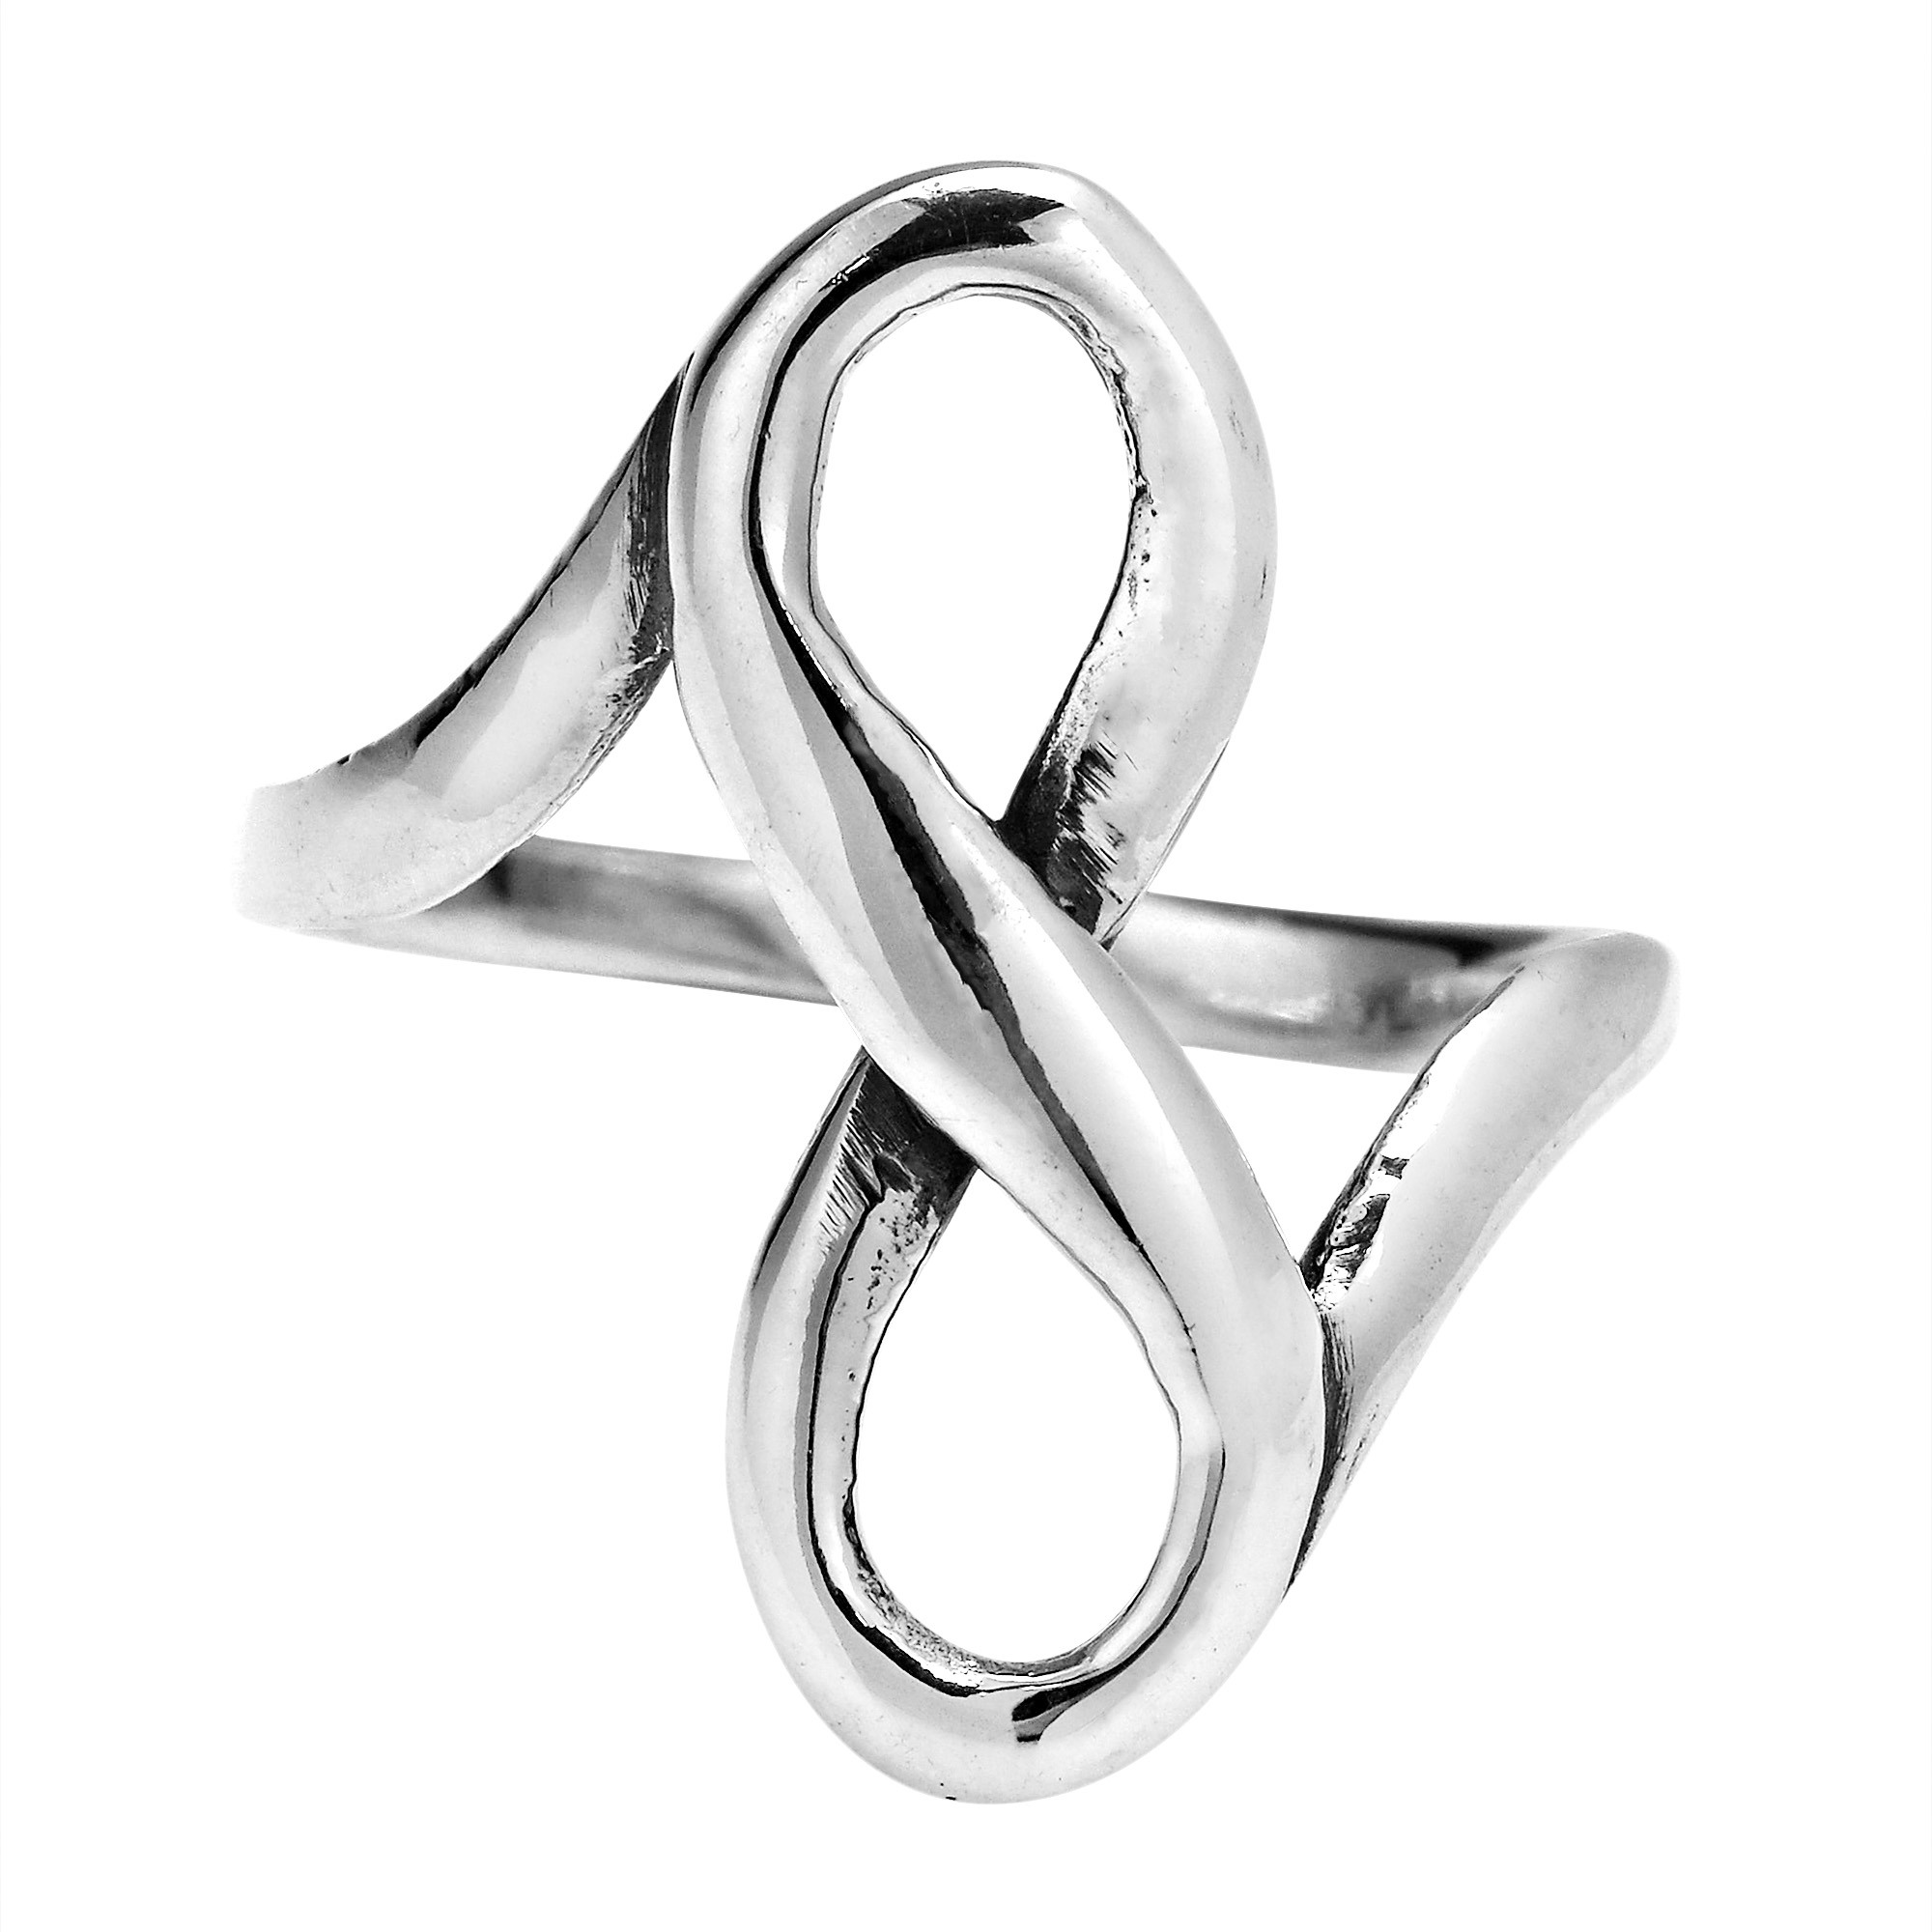 Interlace infinity beloved forever 925 sterling silver ring 6 artisan katsaya crafted sterling silver to form the symbolic ring the features the infinity symbol as the focal point the timeless elegance of the buycottarizona Choice Image